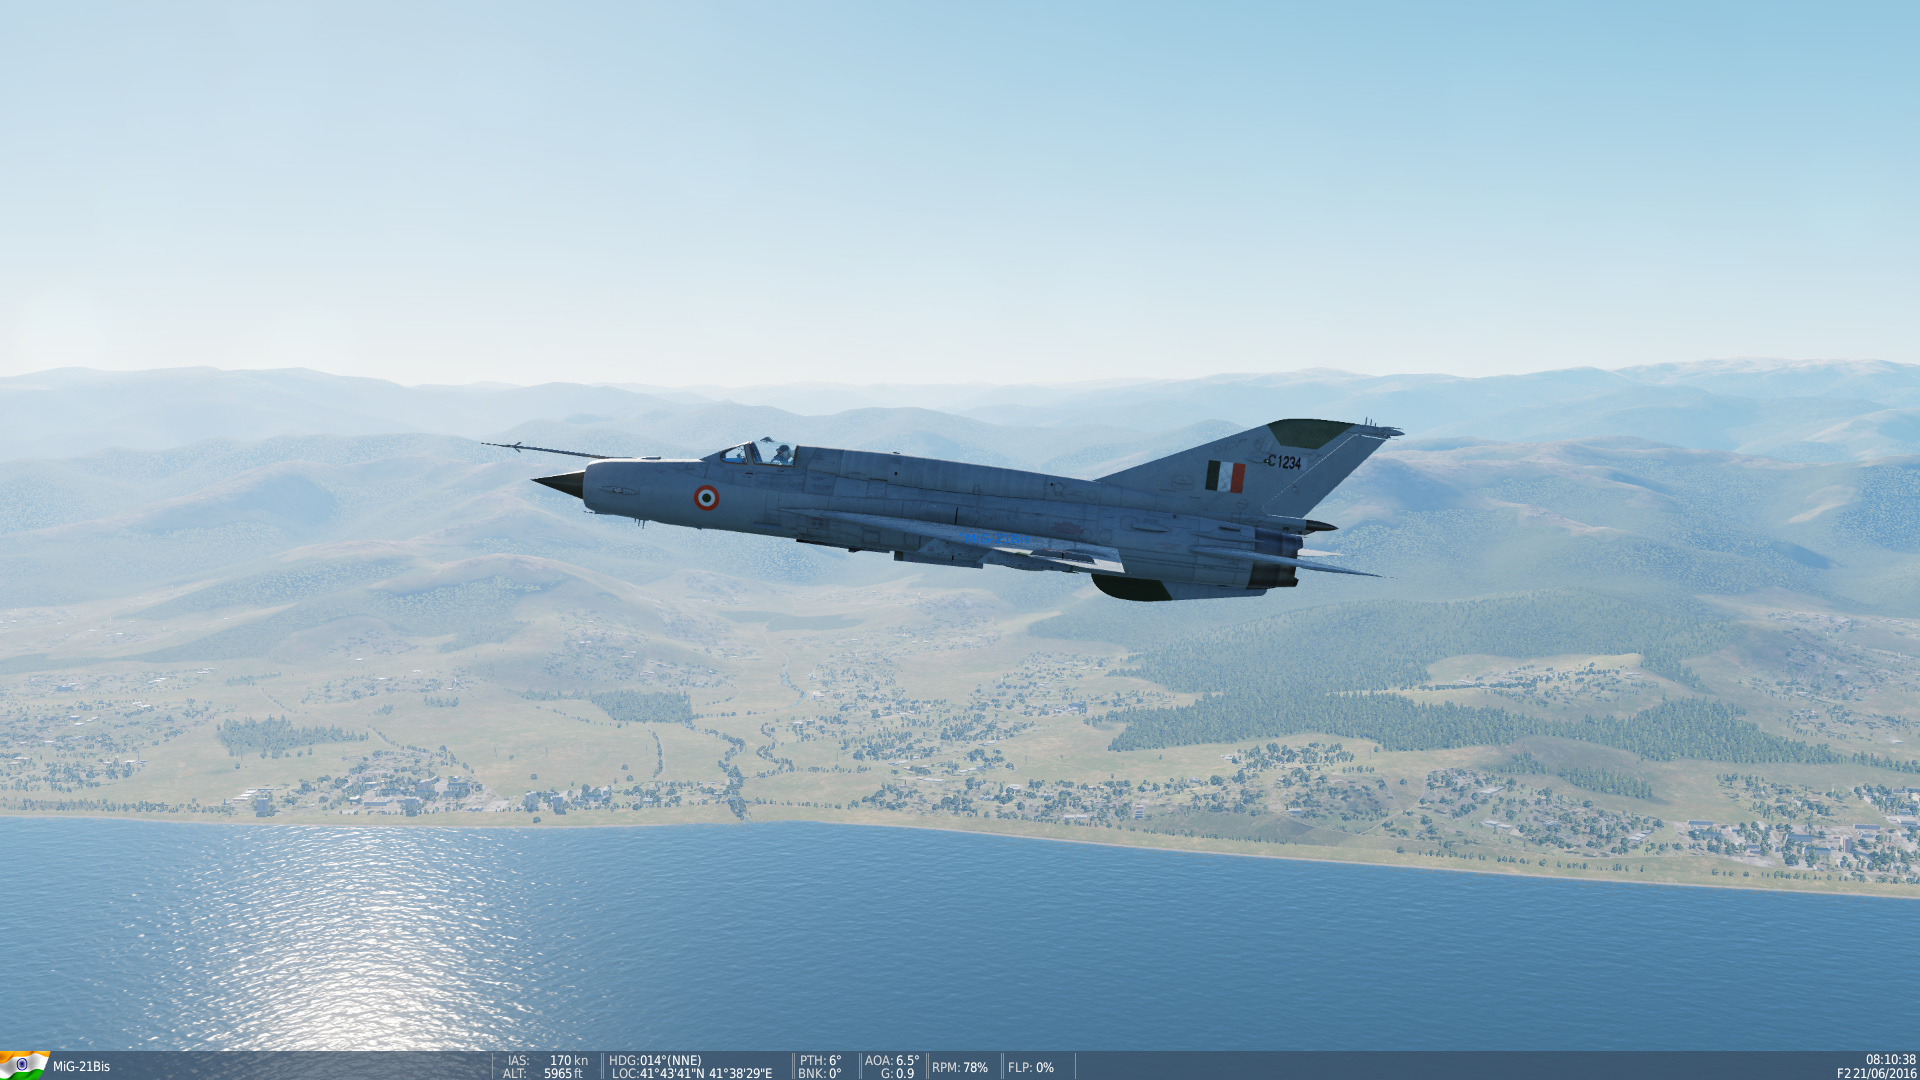 Mig 21bis Basic Gray Skin for Indian Air Force